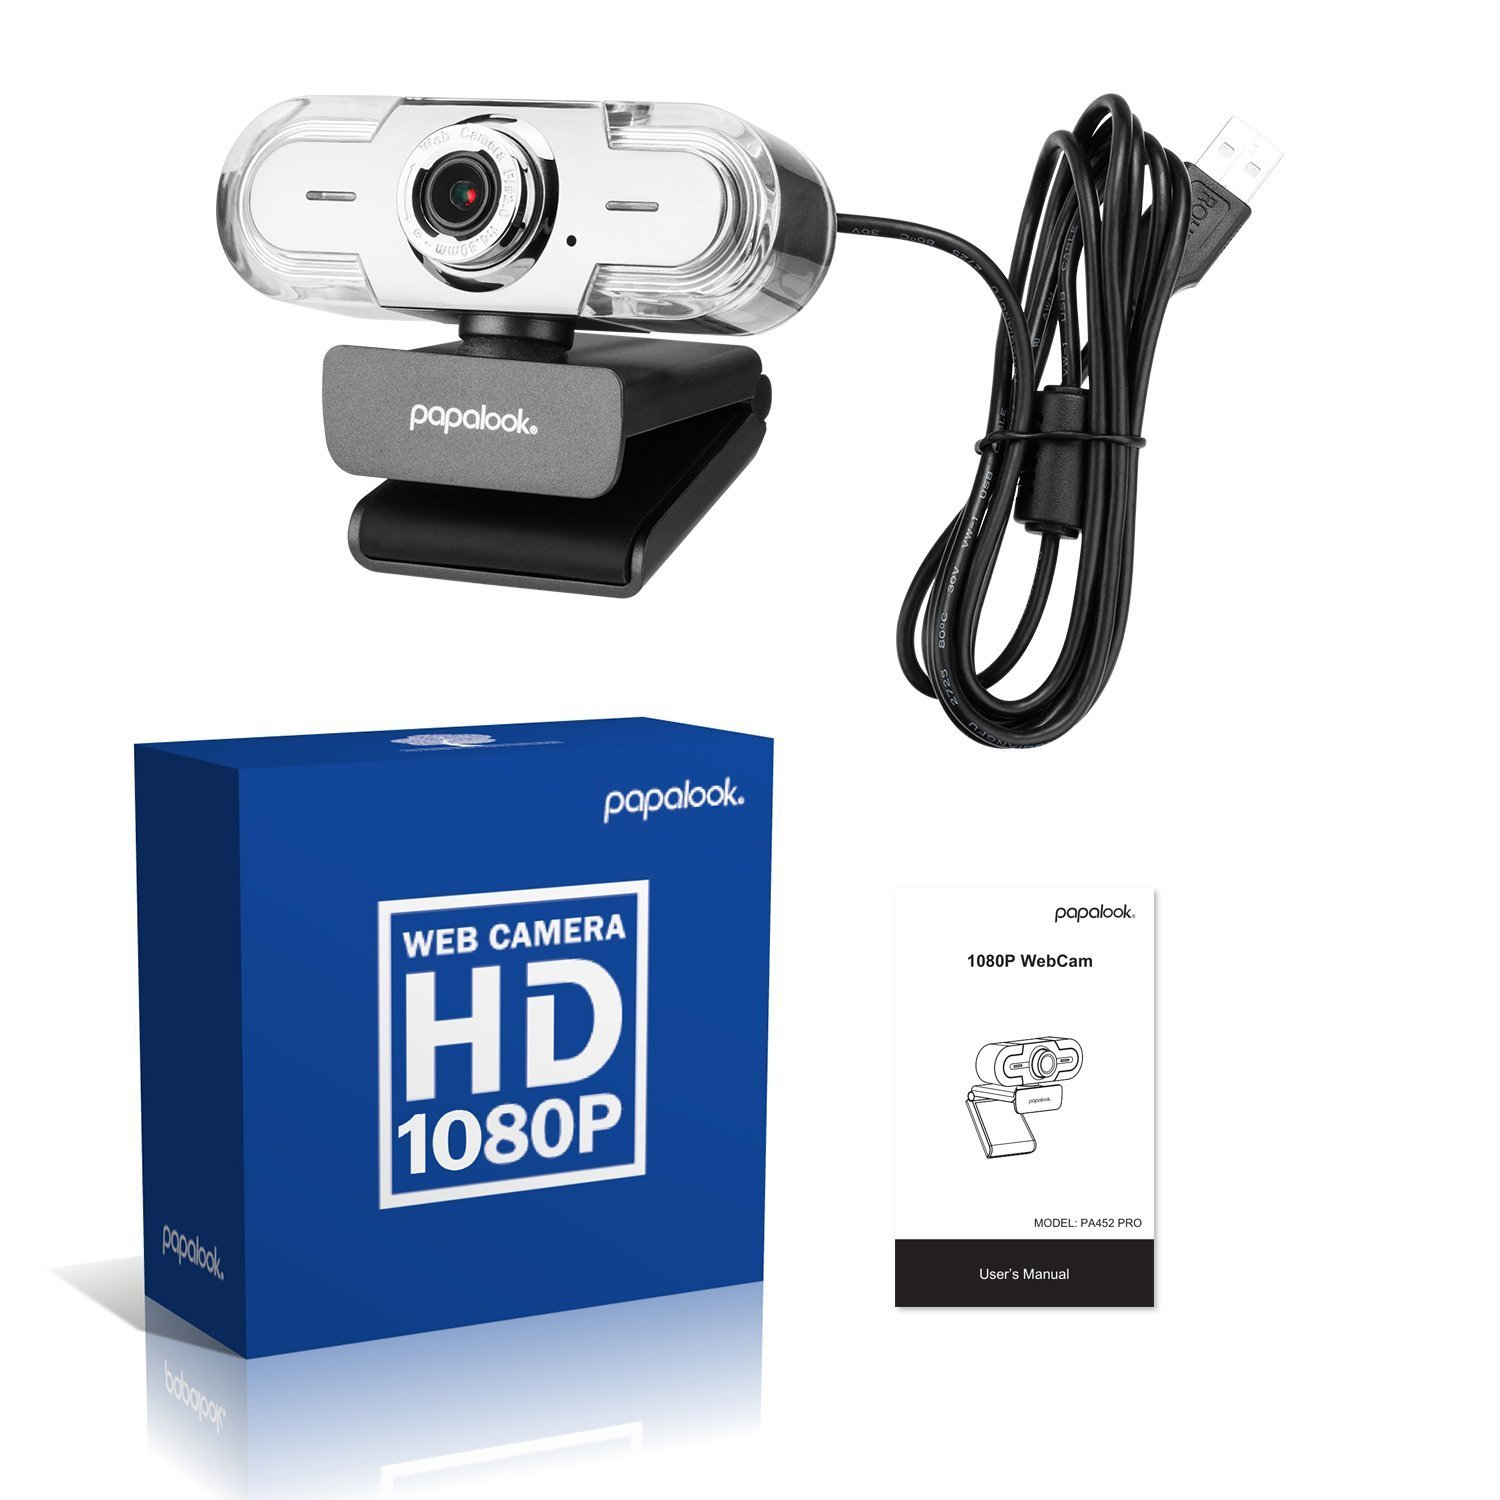 PAPALOOK 1080P HD Webcam, USB PC Computer Camera PA452 PRO Web Camera, Built-in Mic for Video Skype YouTube Compatible with Windows 7/8/10 by papalook (Image #7)